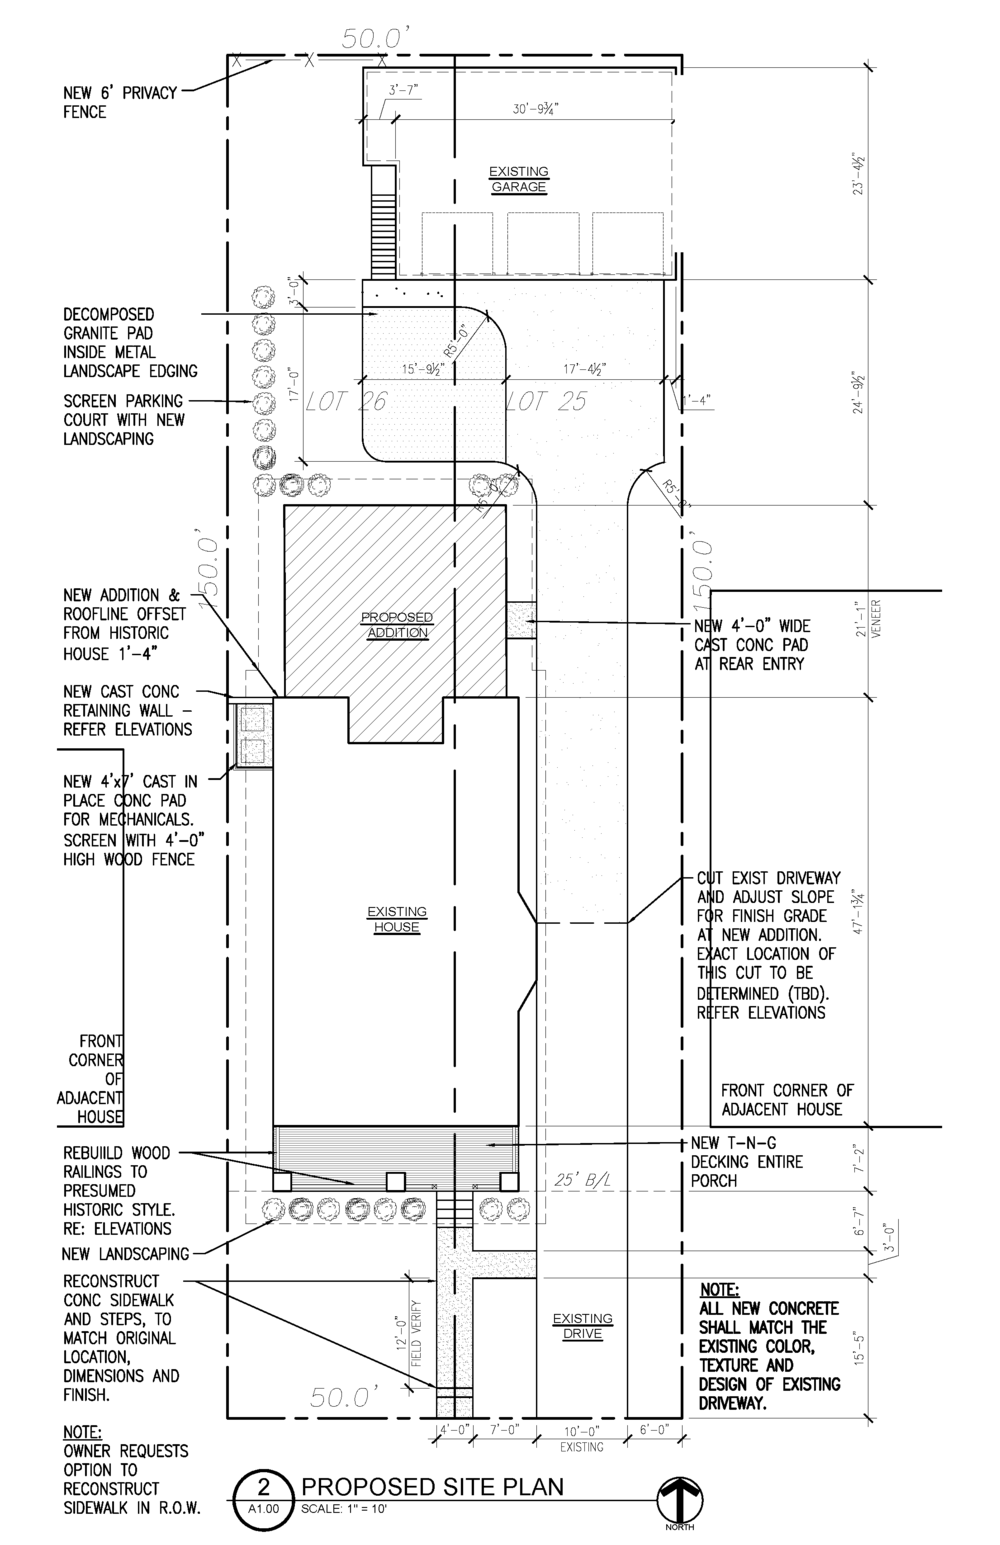 617 Design Drawings_Redacted_Page_2.png